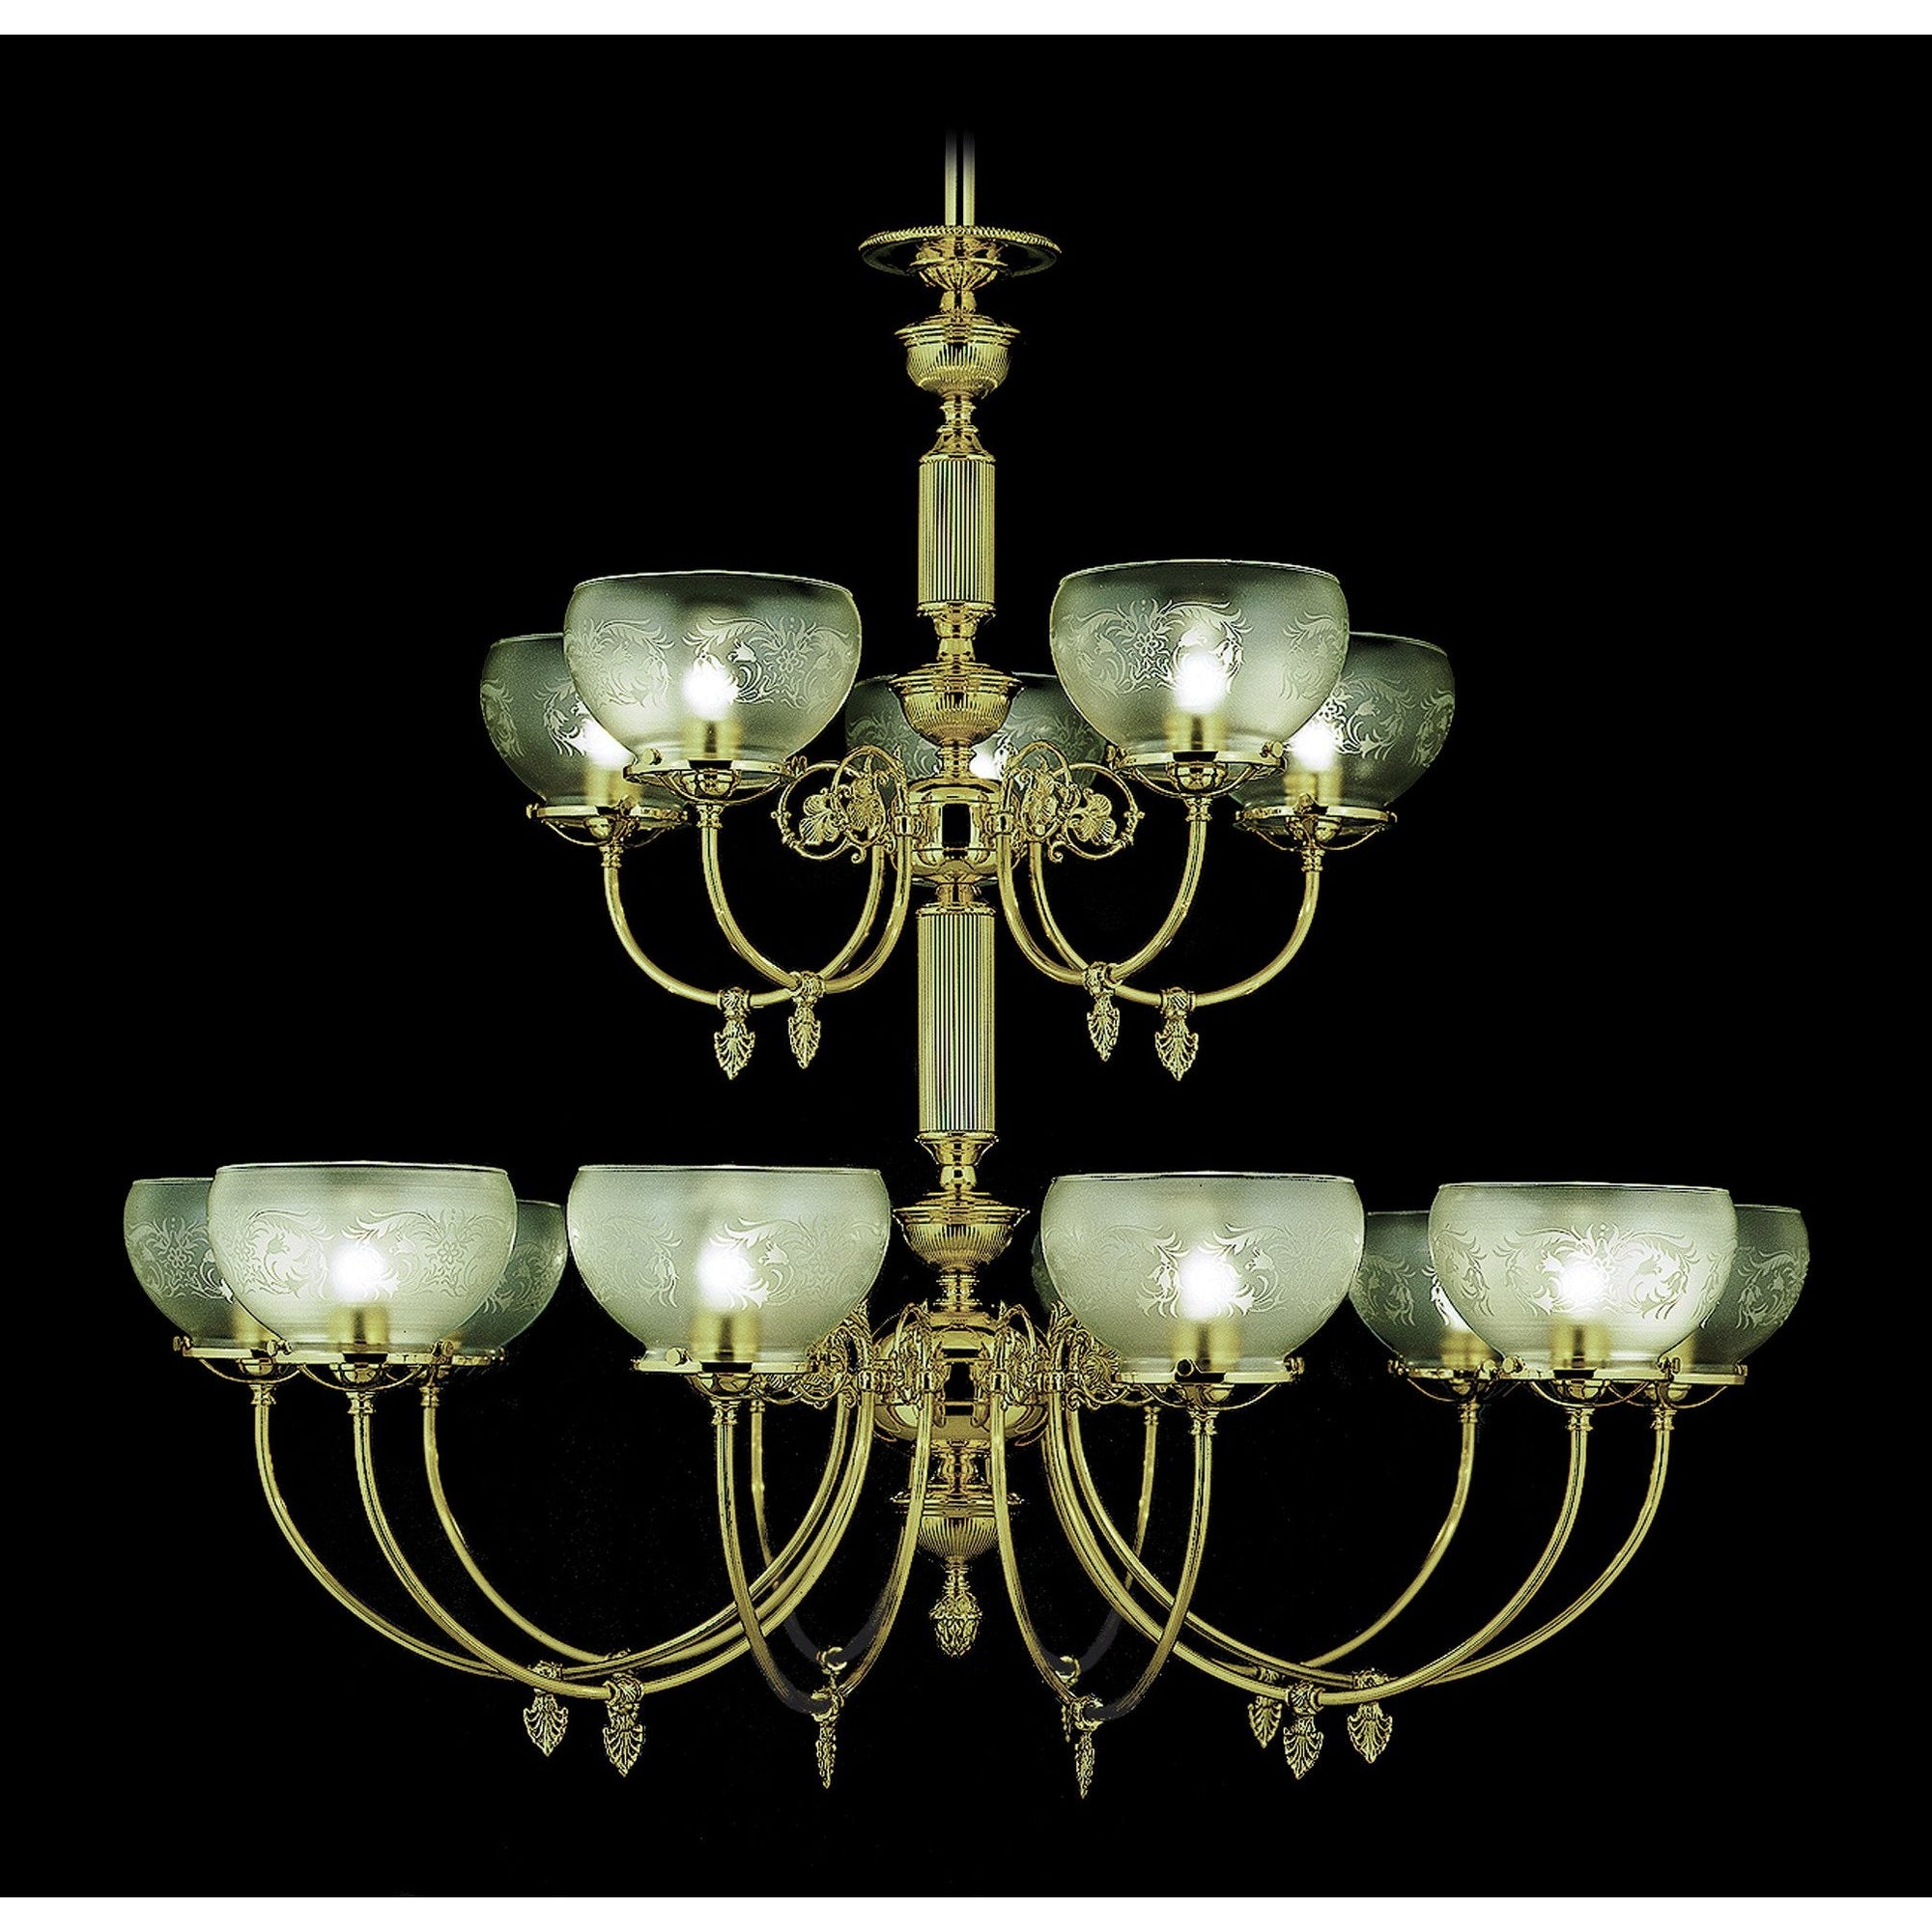 Framburg Foyer Chandeliers Polished Brass 15-Light Polished Brass Chancery Foyer Chandelier by Framburg 7515